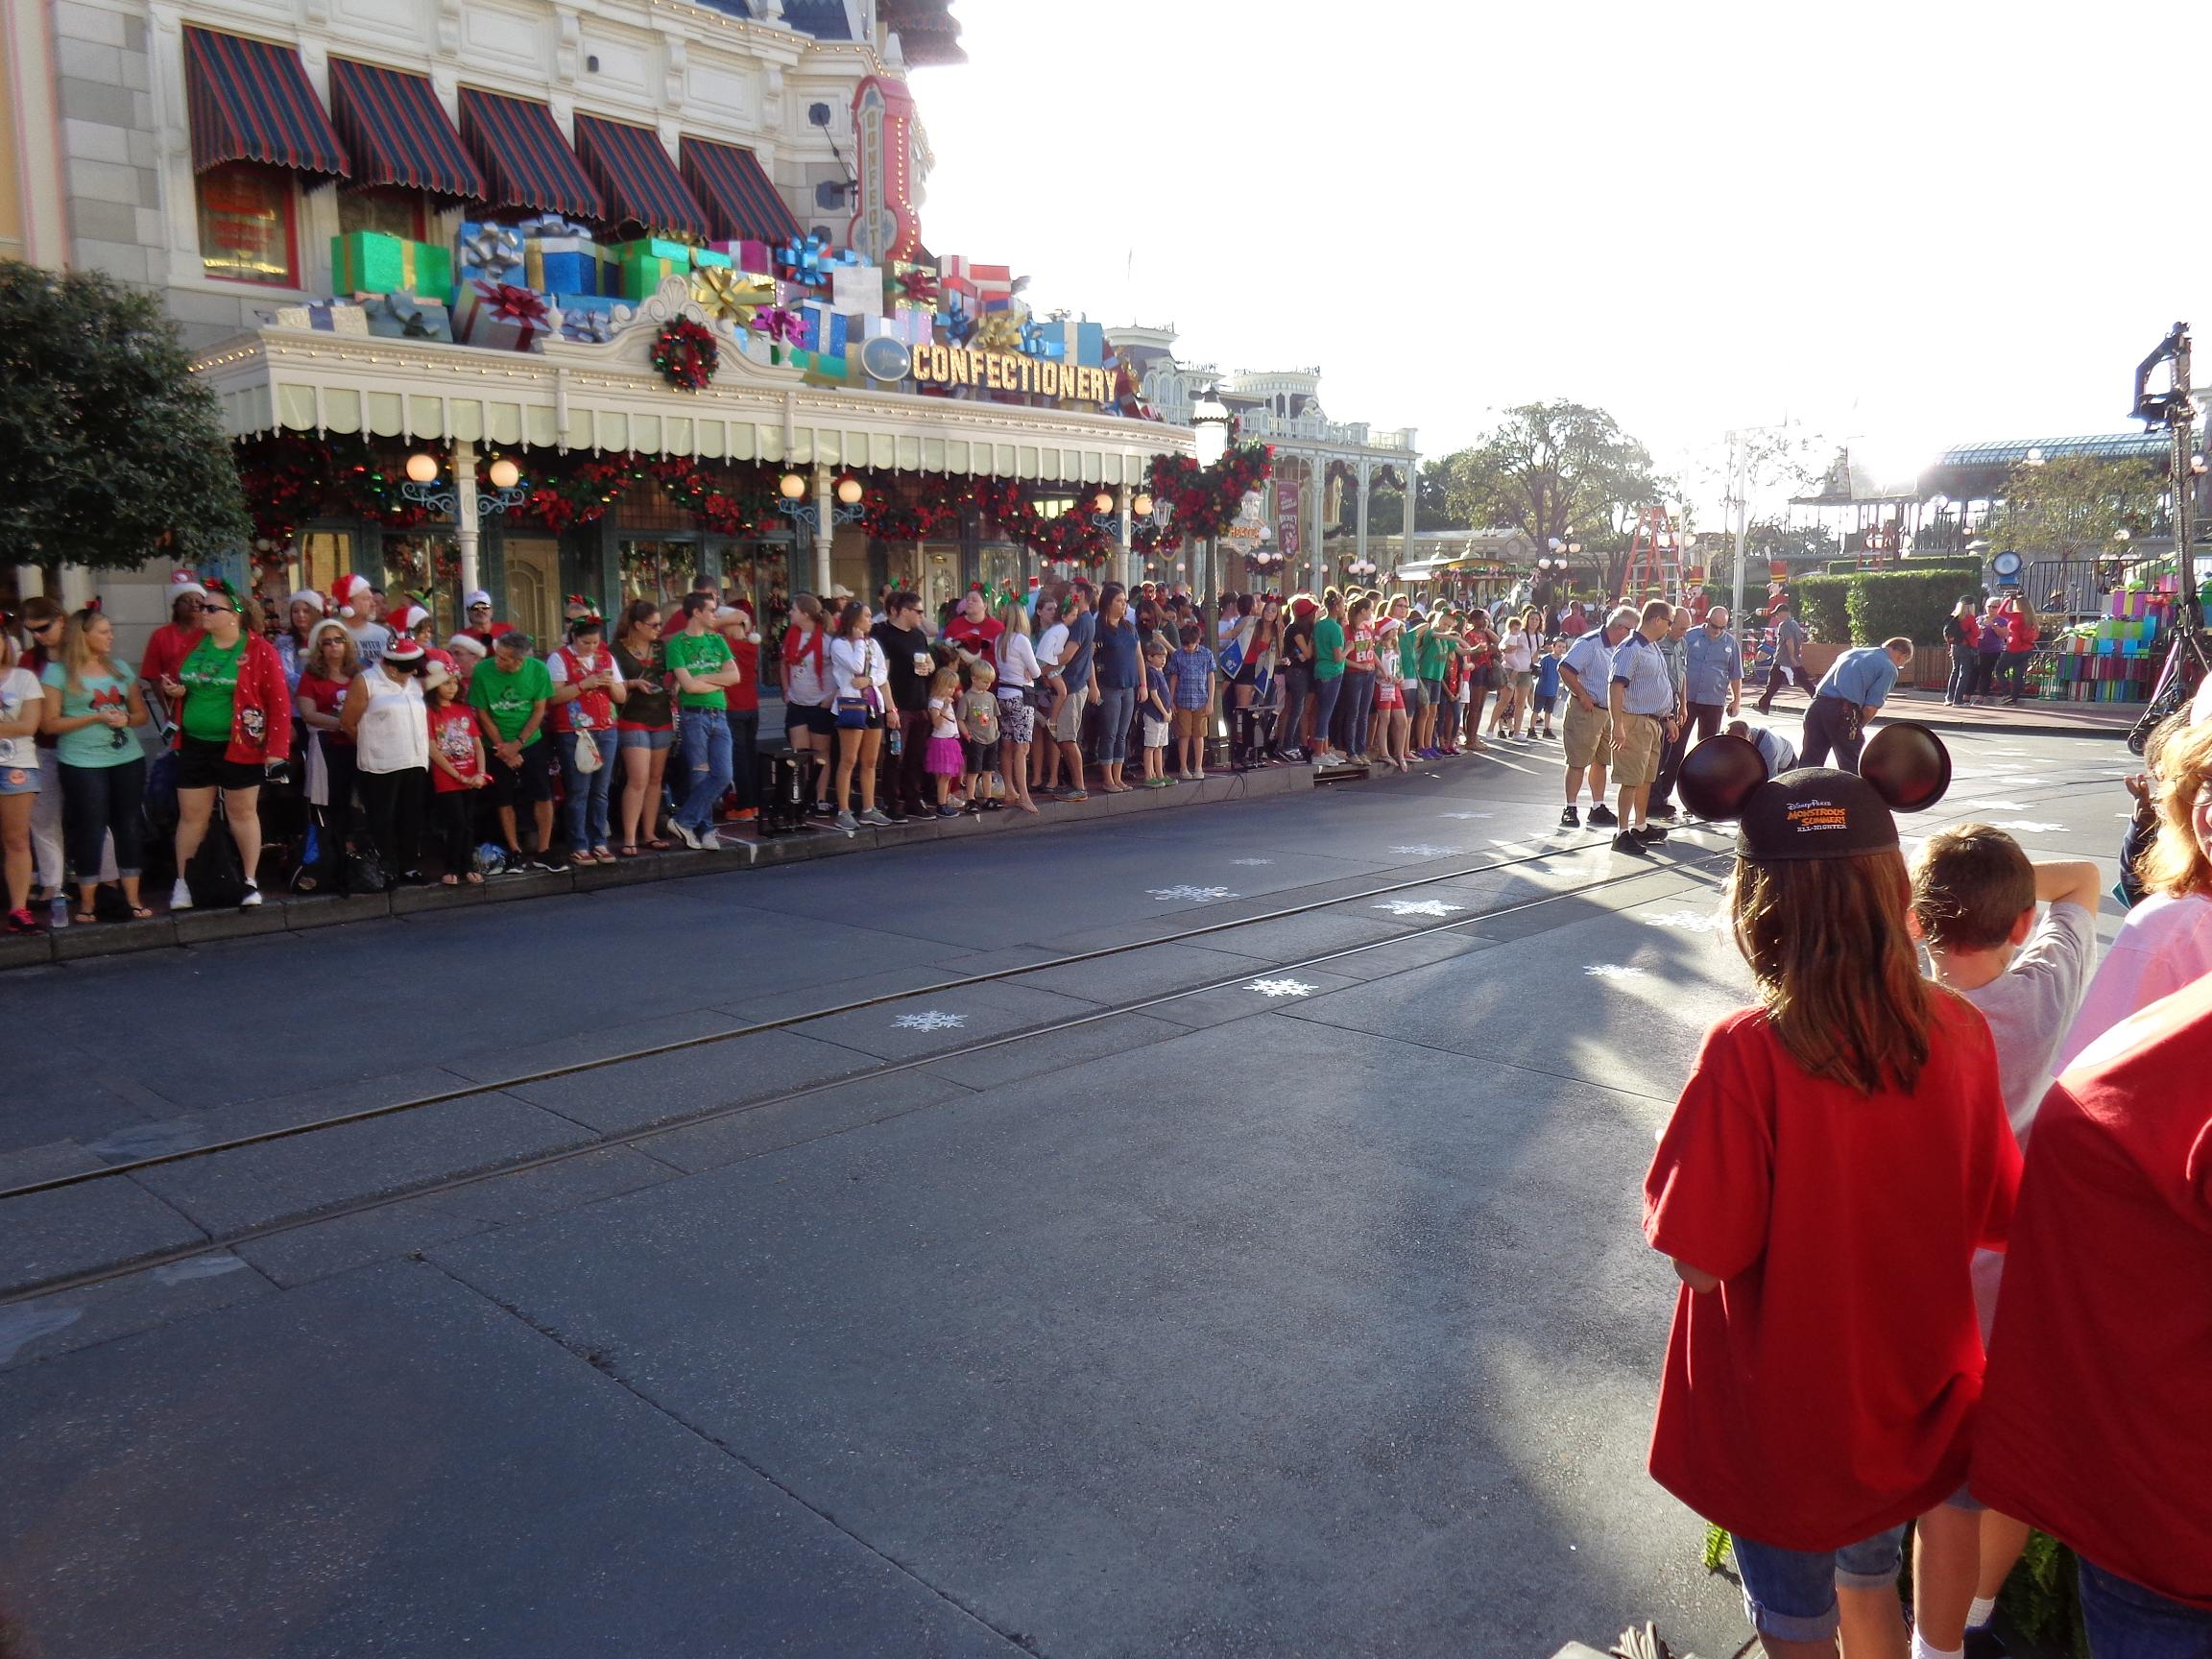 Morning of day two for the Disney Parks Christmas Day Parade filming